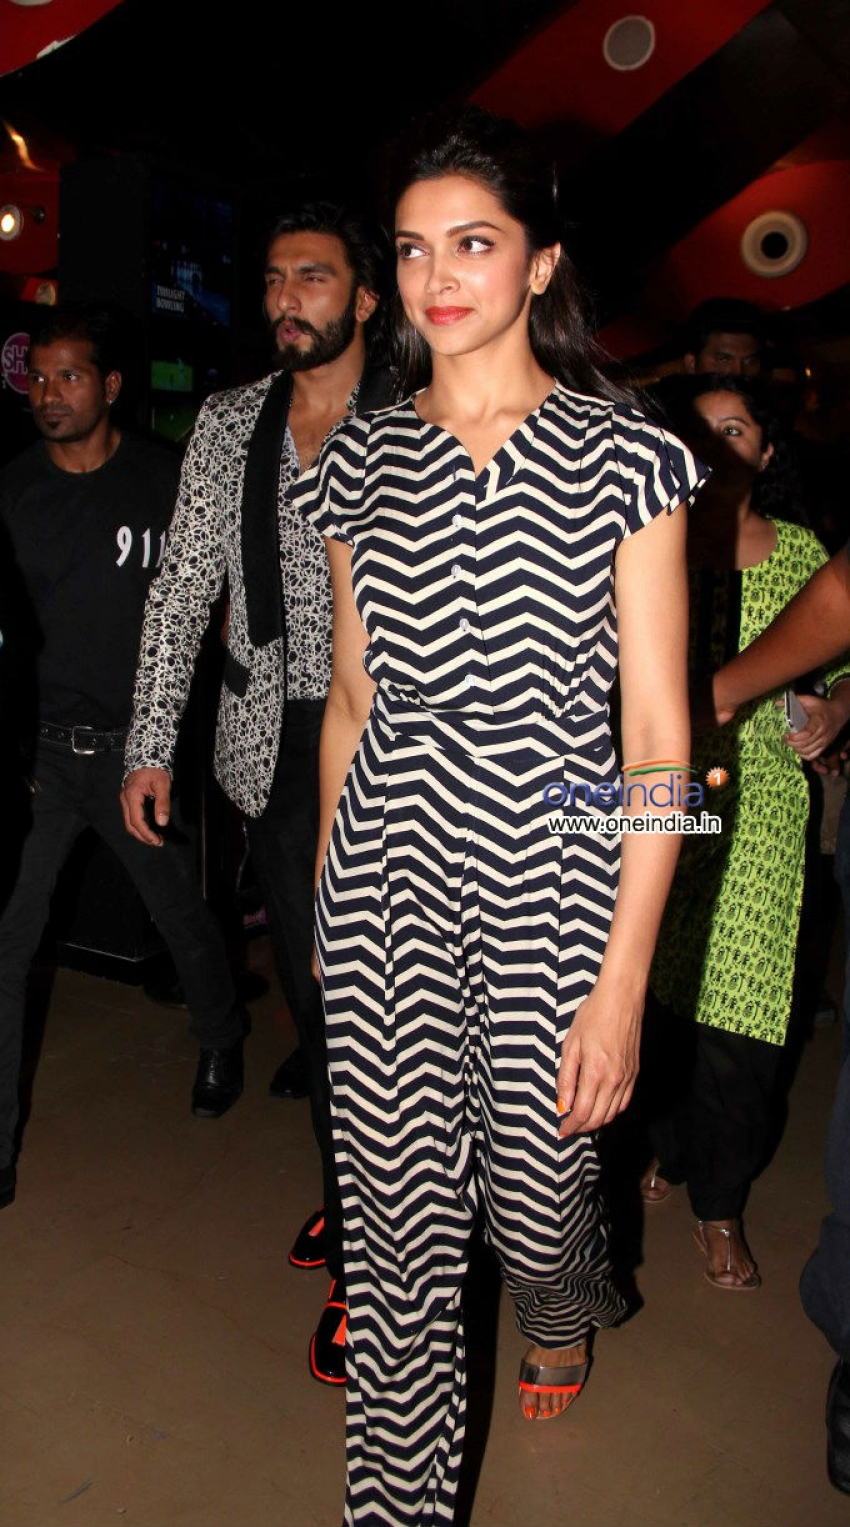 Deepika Padukone and Ranveer Singh visits Chandan Cinema Mumbai Photos